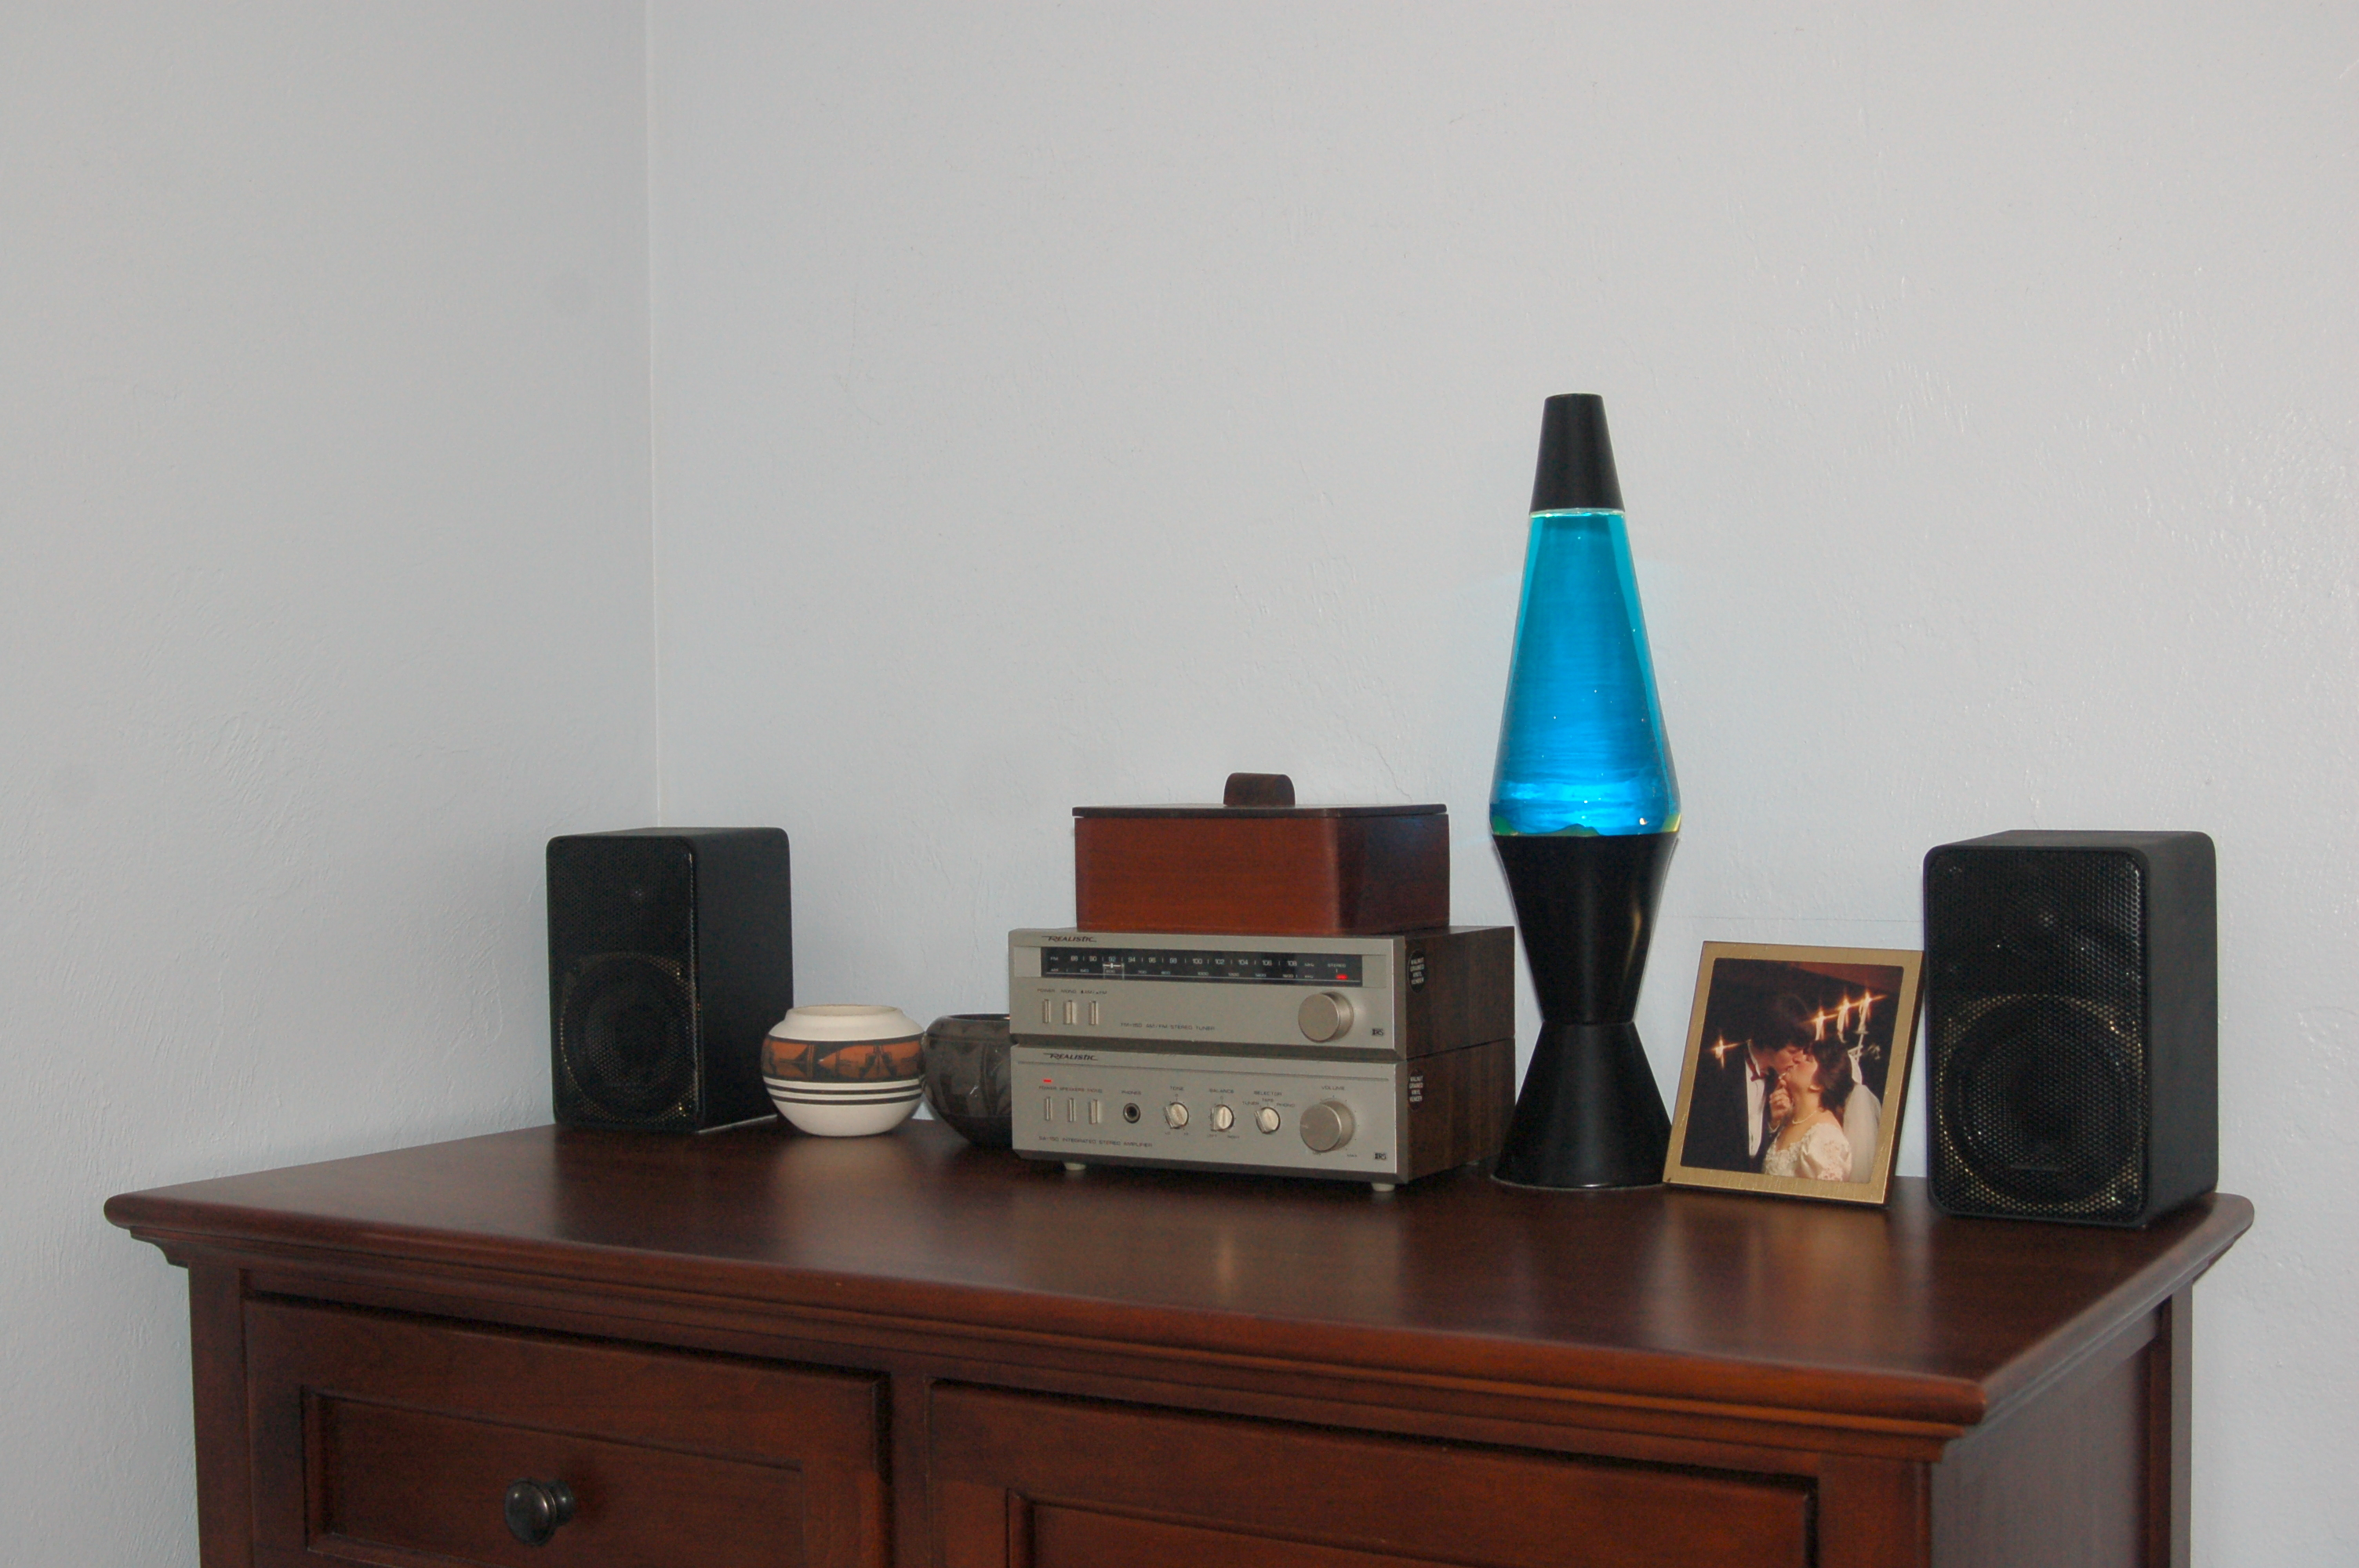 And Lastly, The Mood Music System In The Bedroom.